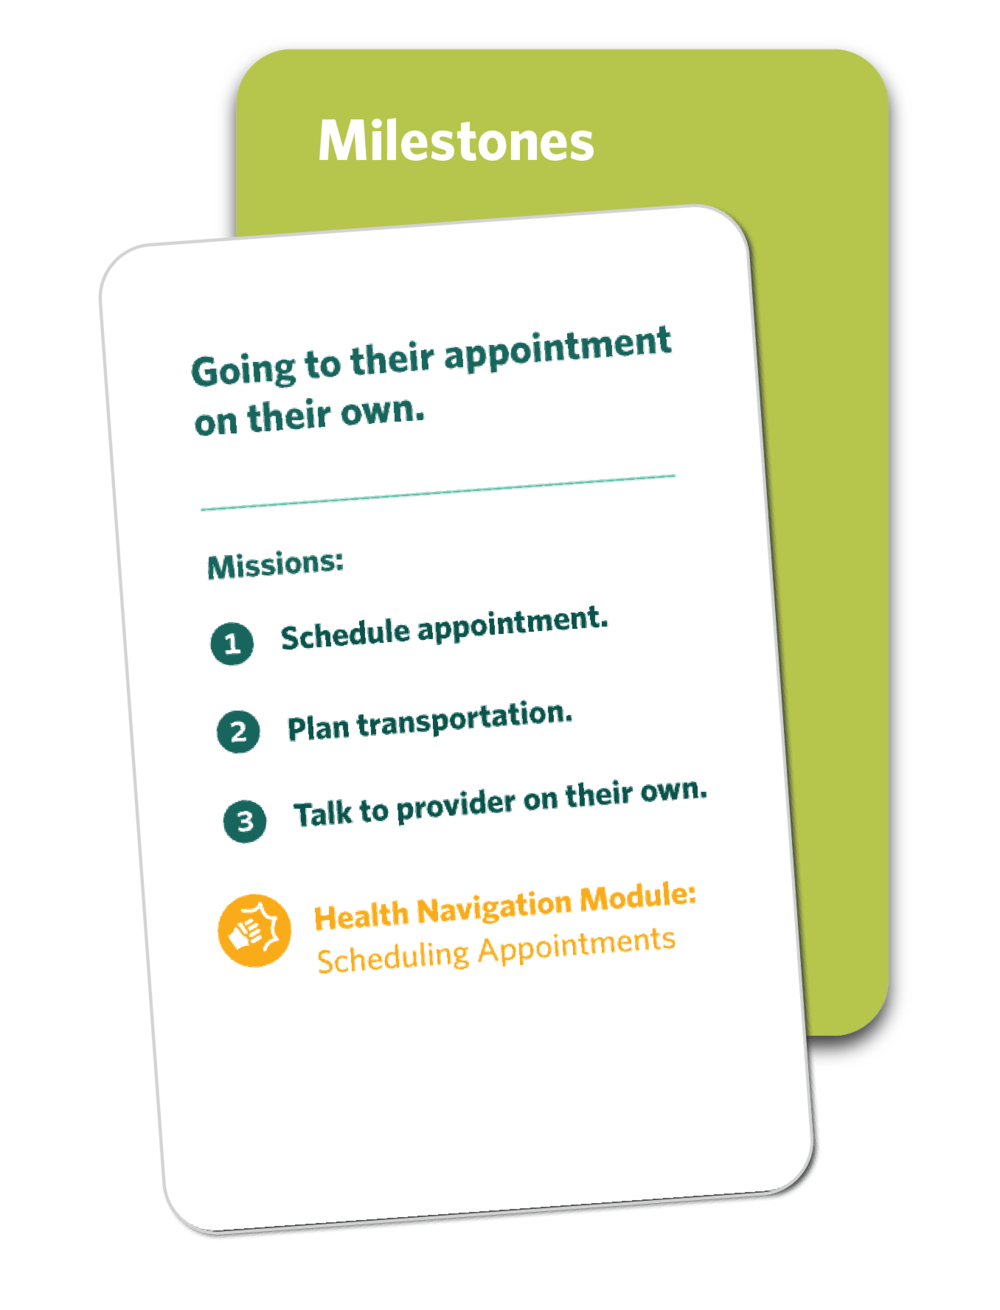 Milestone cards represent goals in different areas surrounding the patient's life.